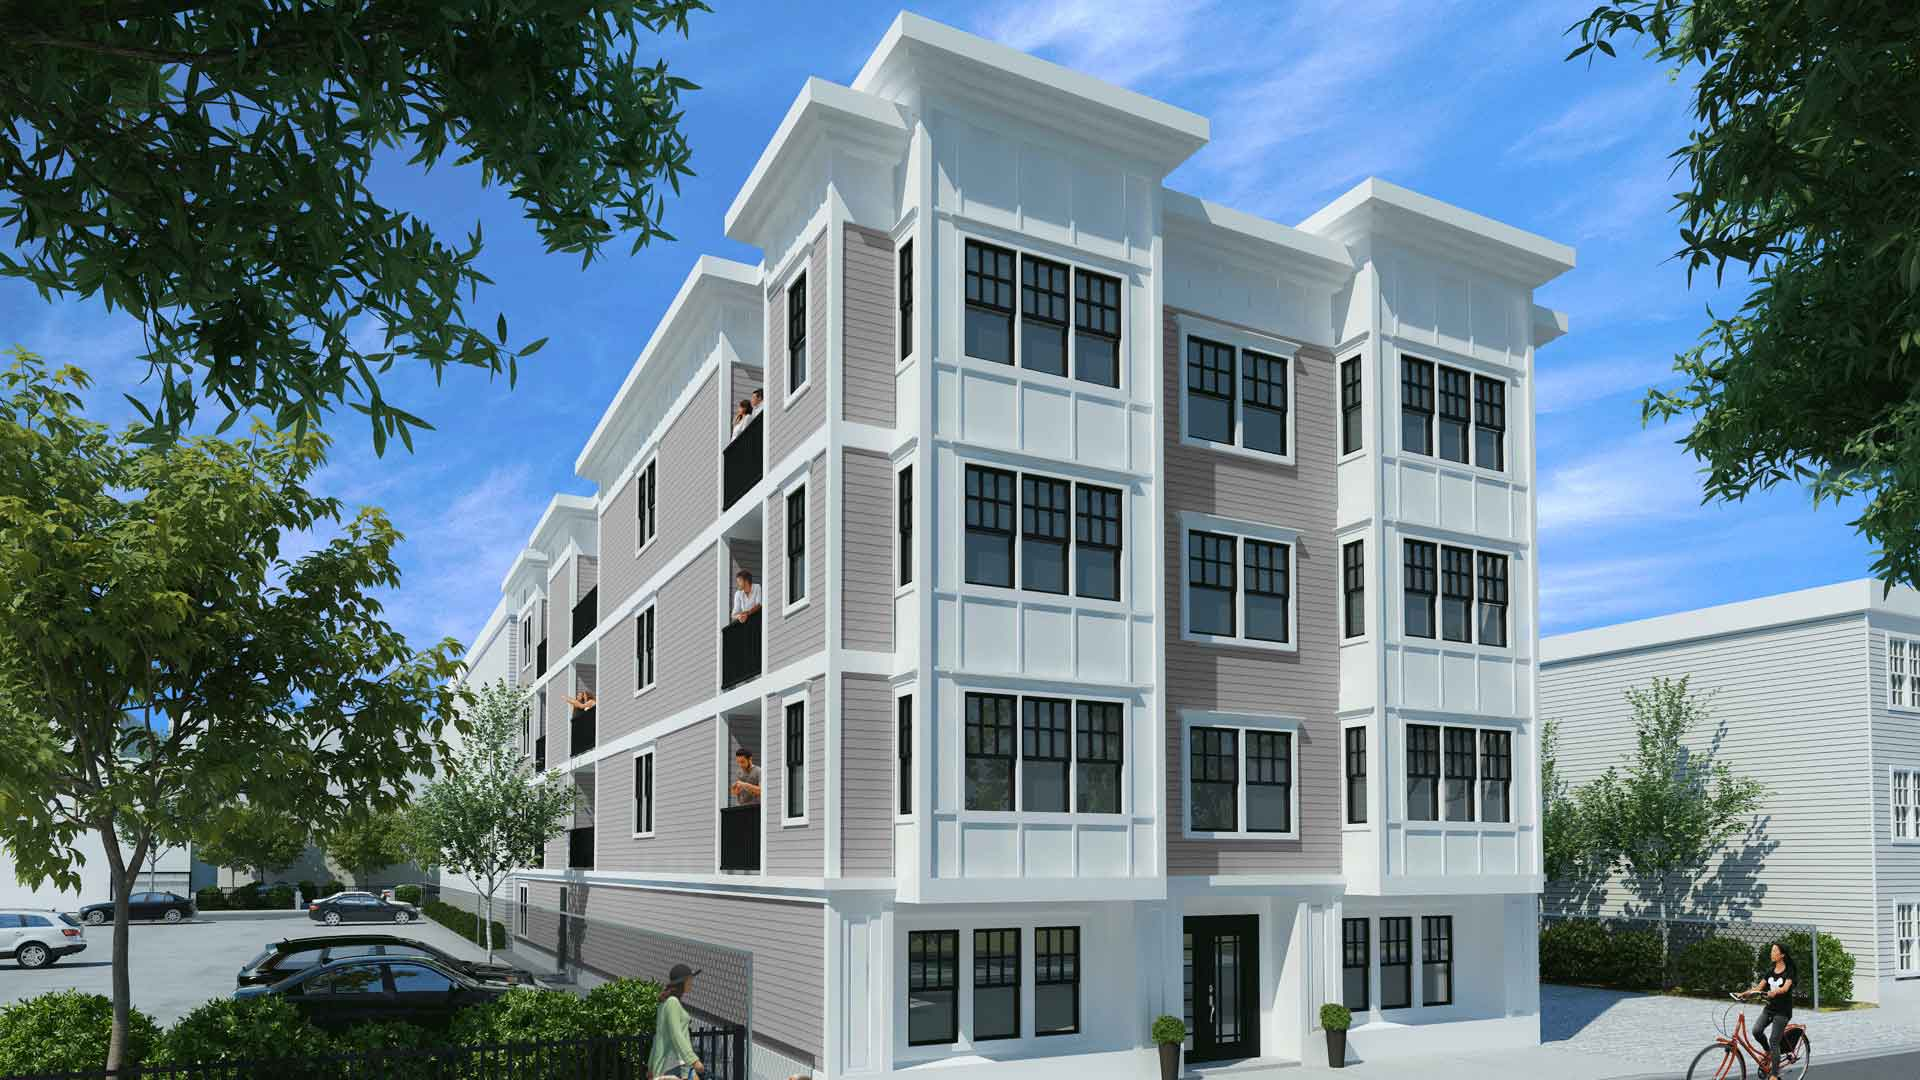 The fratera luxury condos east boston bushari real estate 186 havre street residential new construction ballas group jamaica plain developer